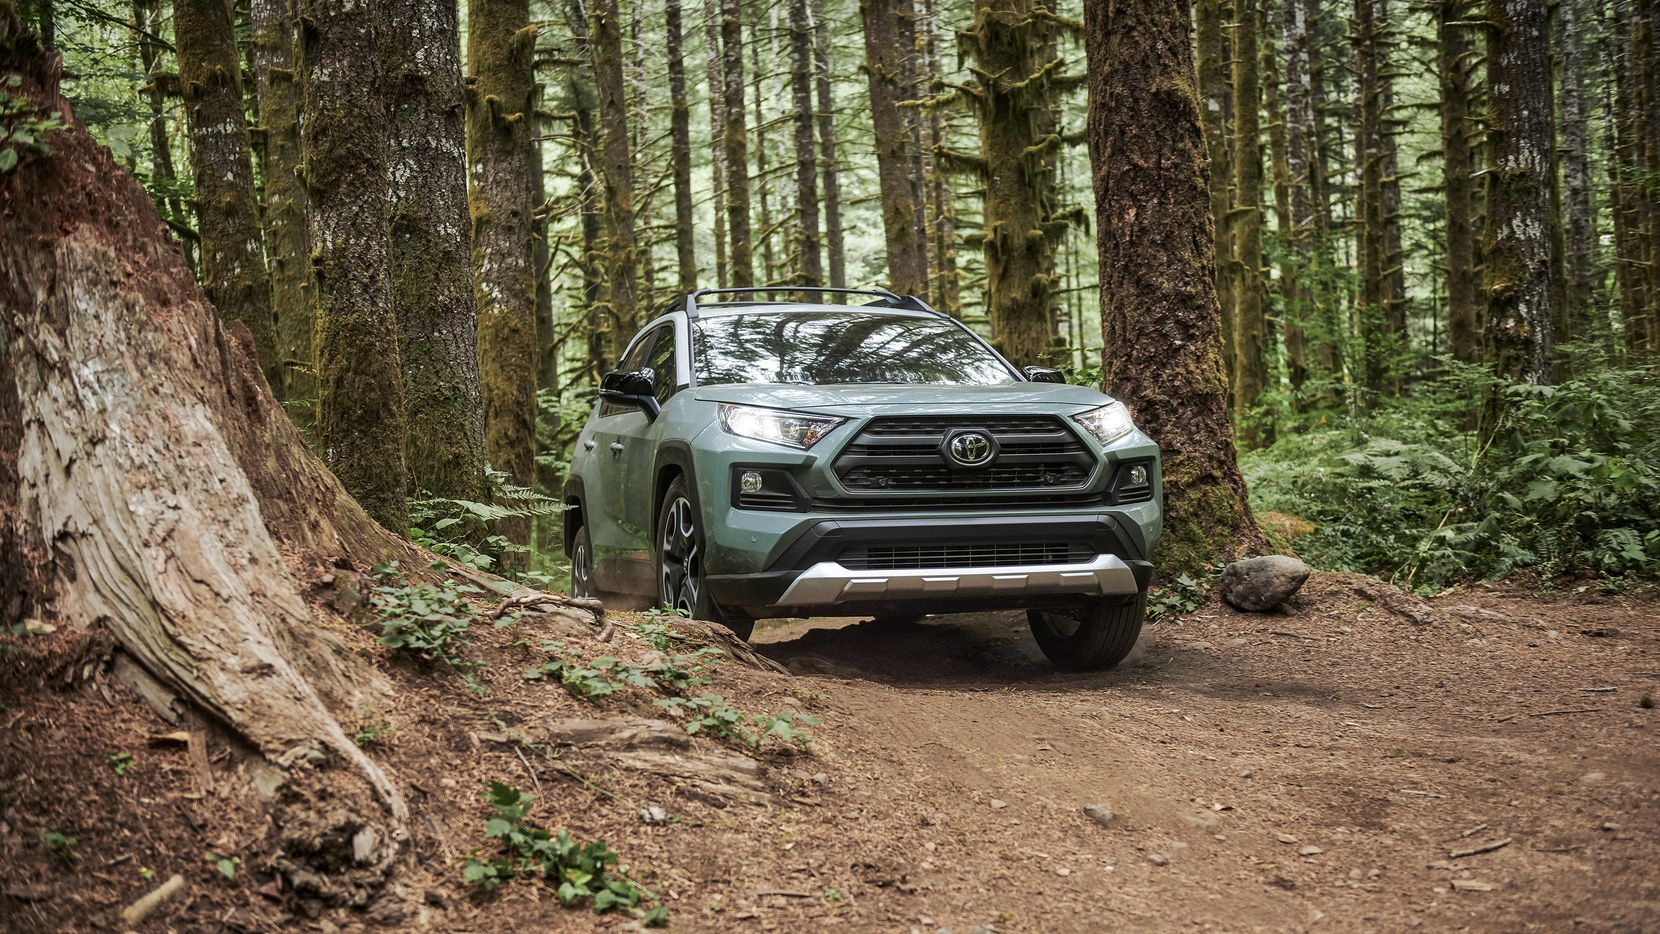 If Adventure isn't rough enough for you, Toyota will debut an off-road version in 2020.